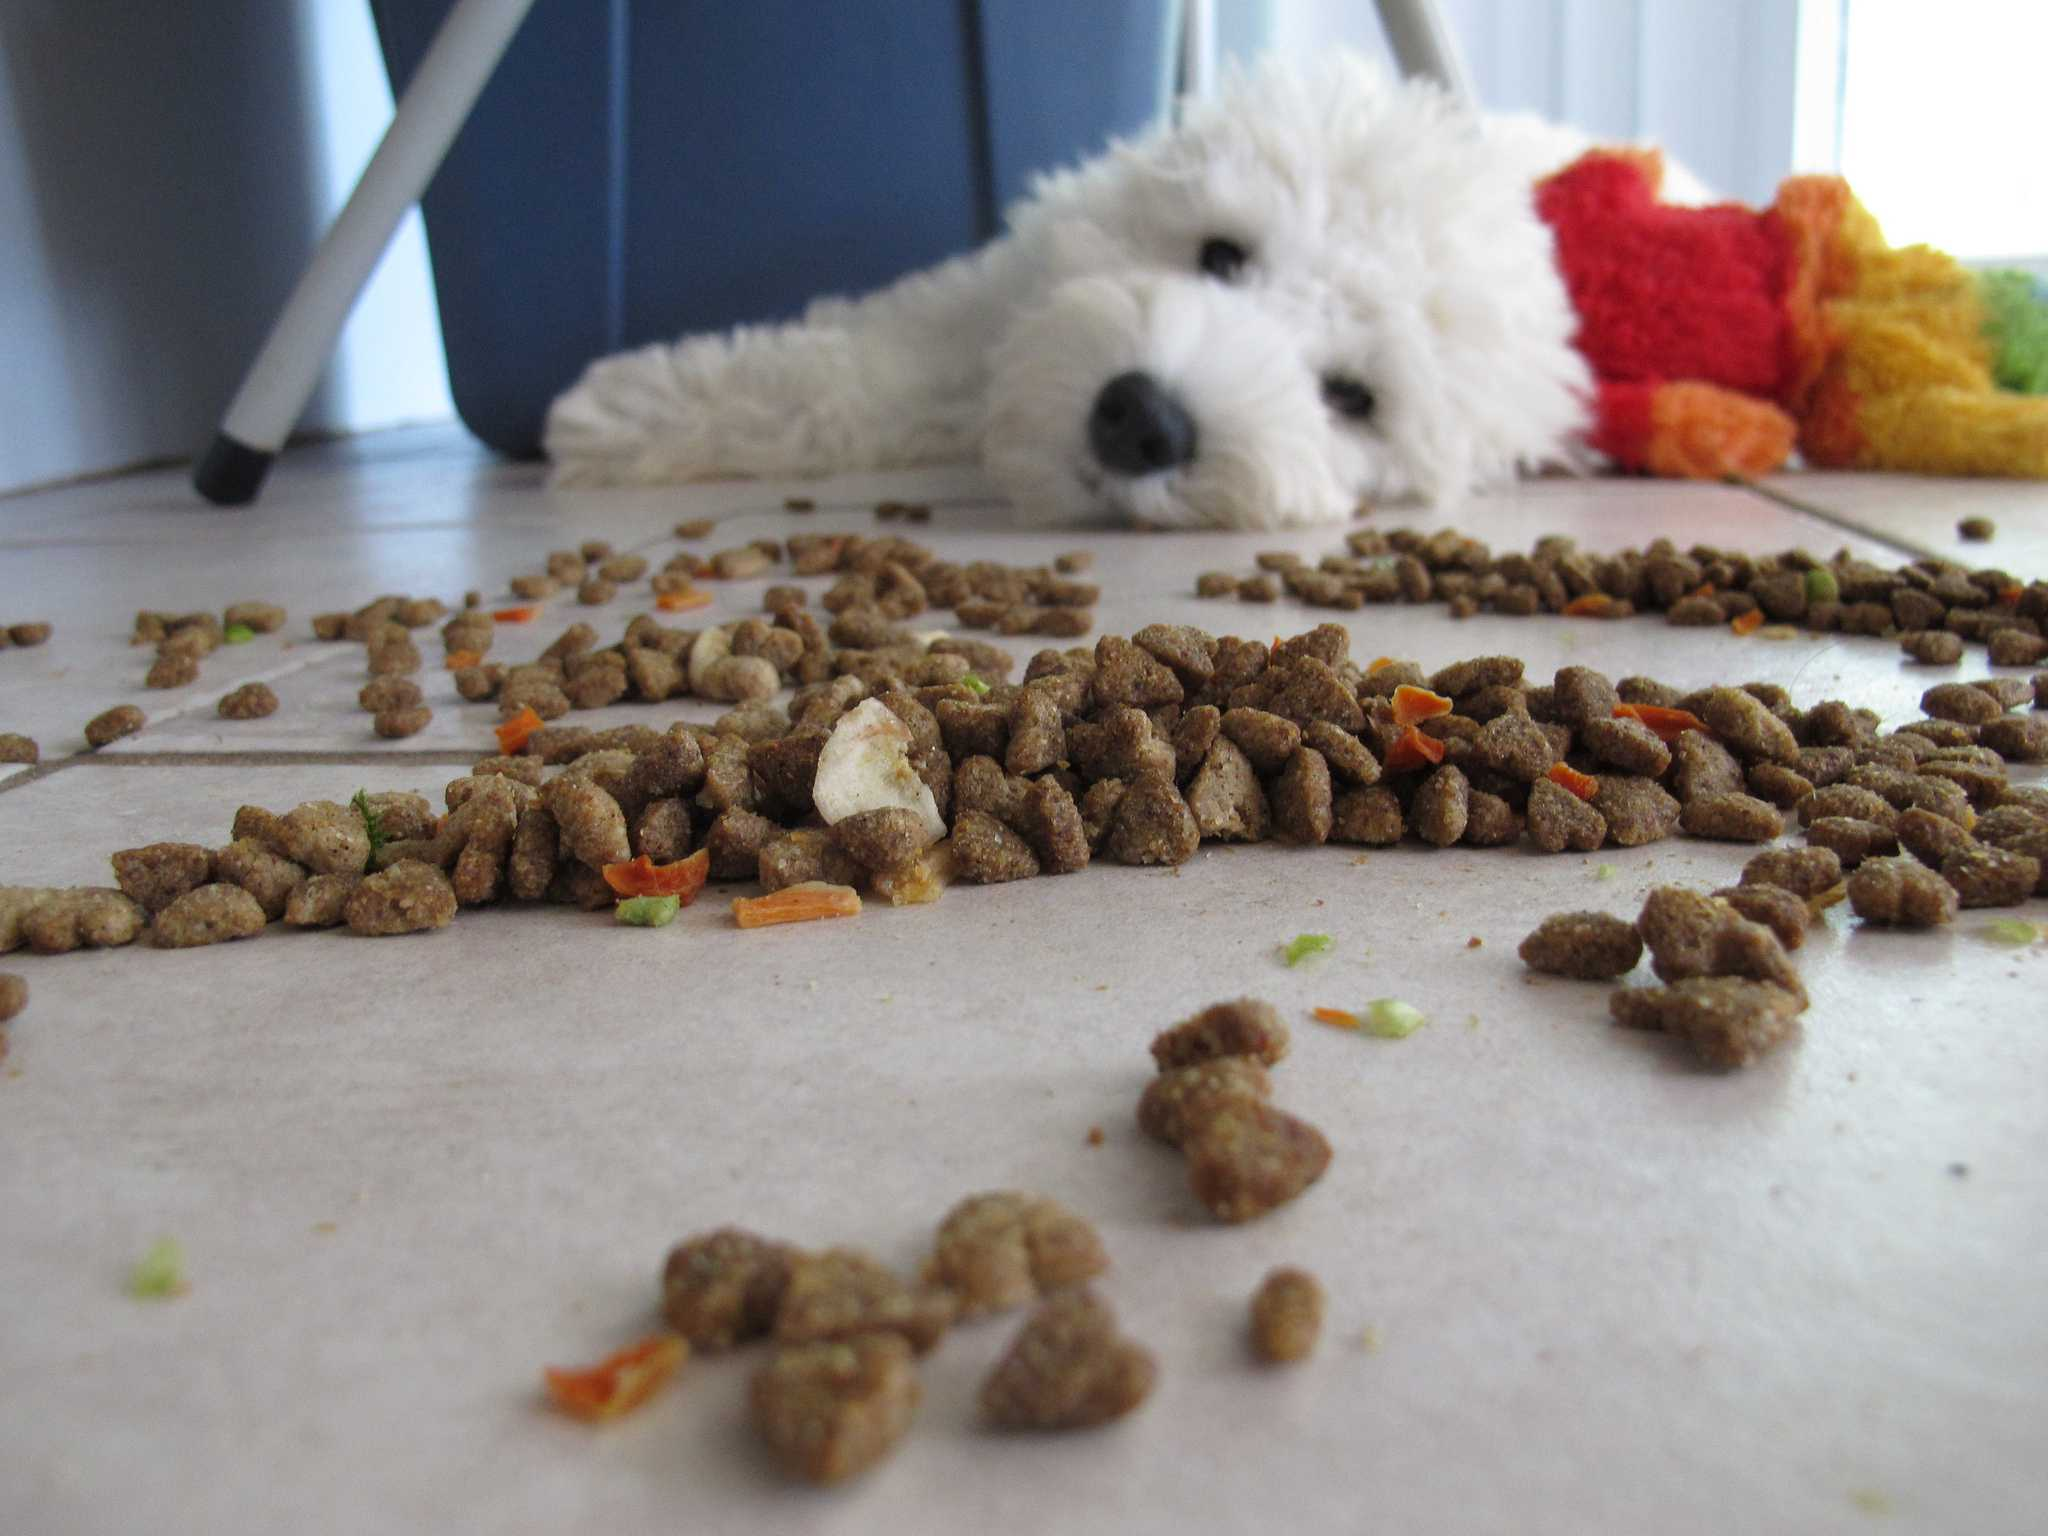 Dog laying down behind spilled food